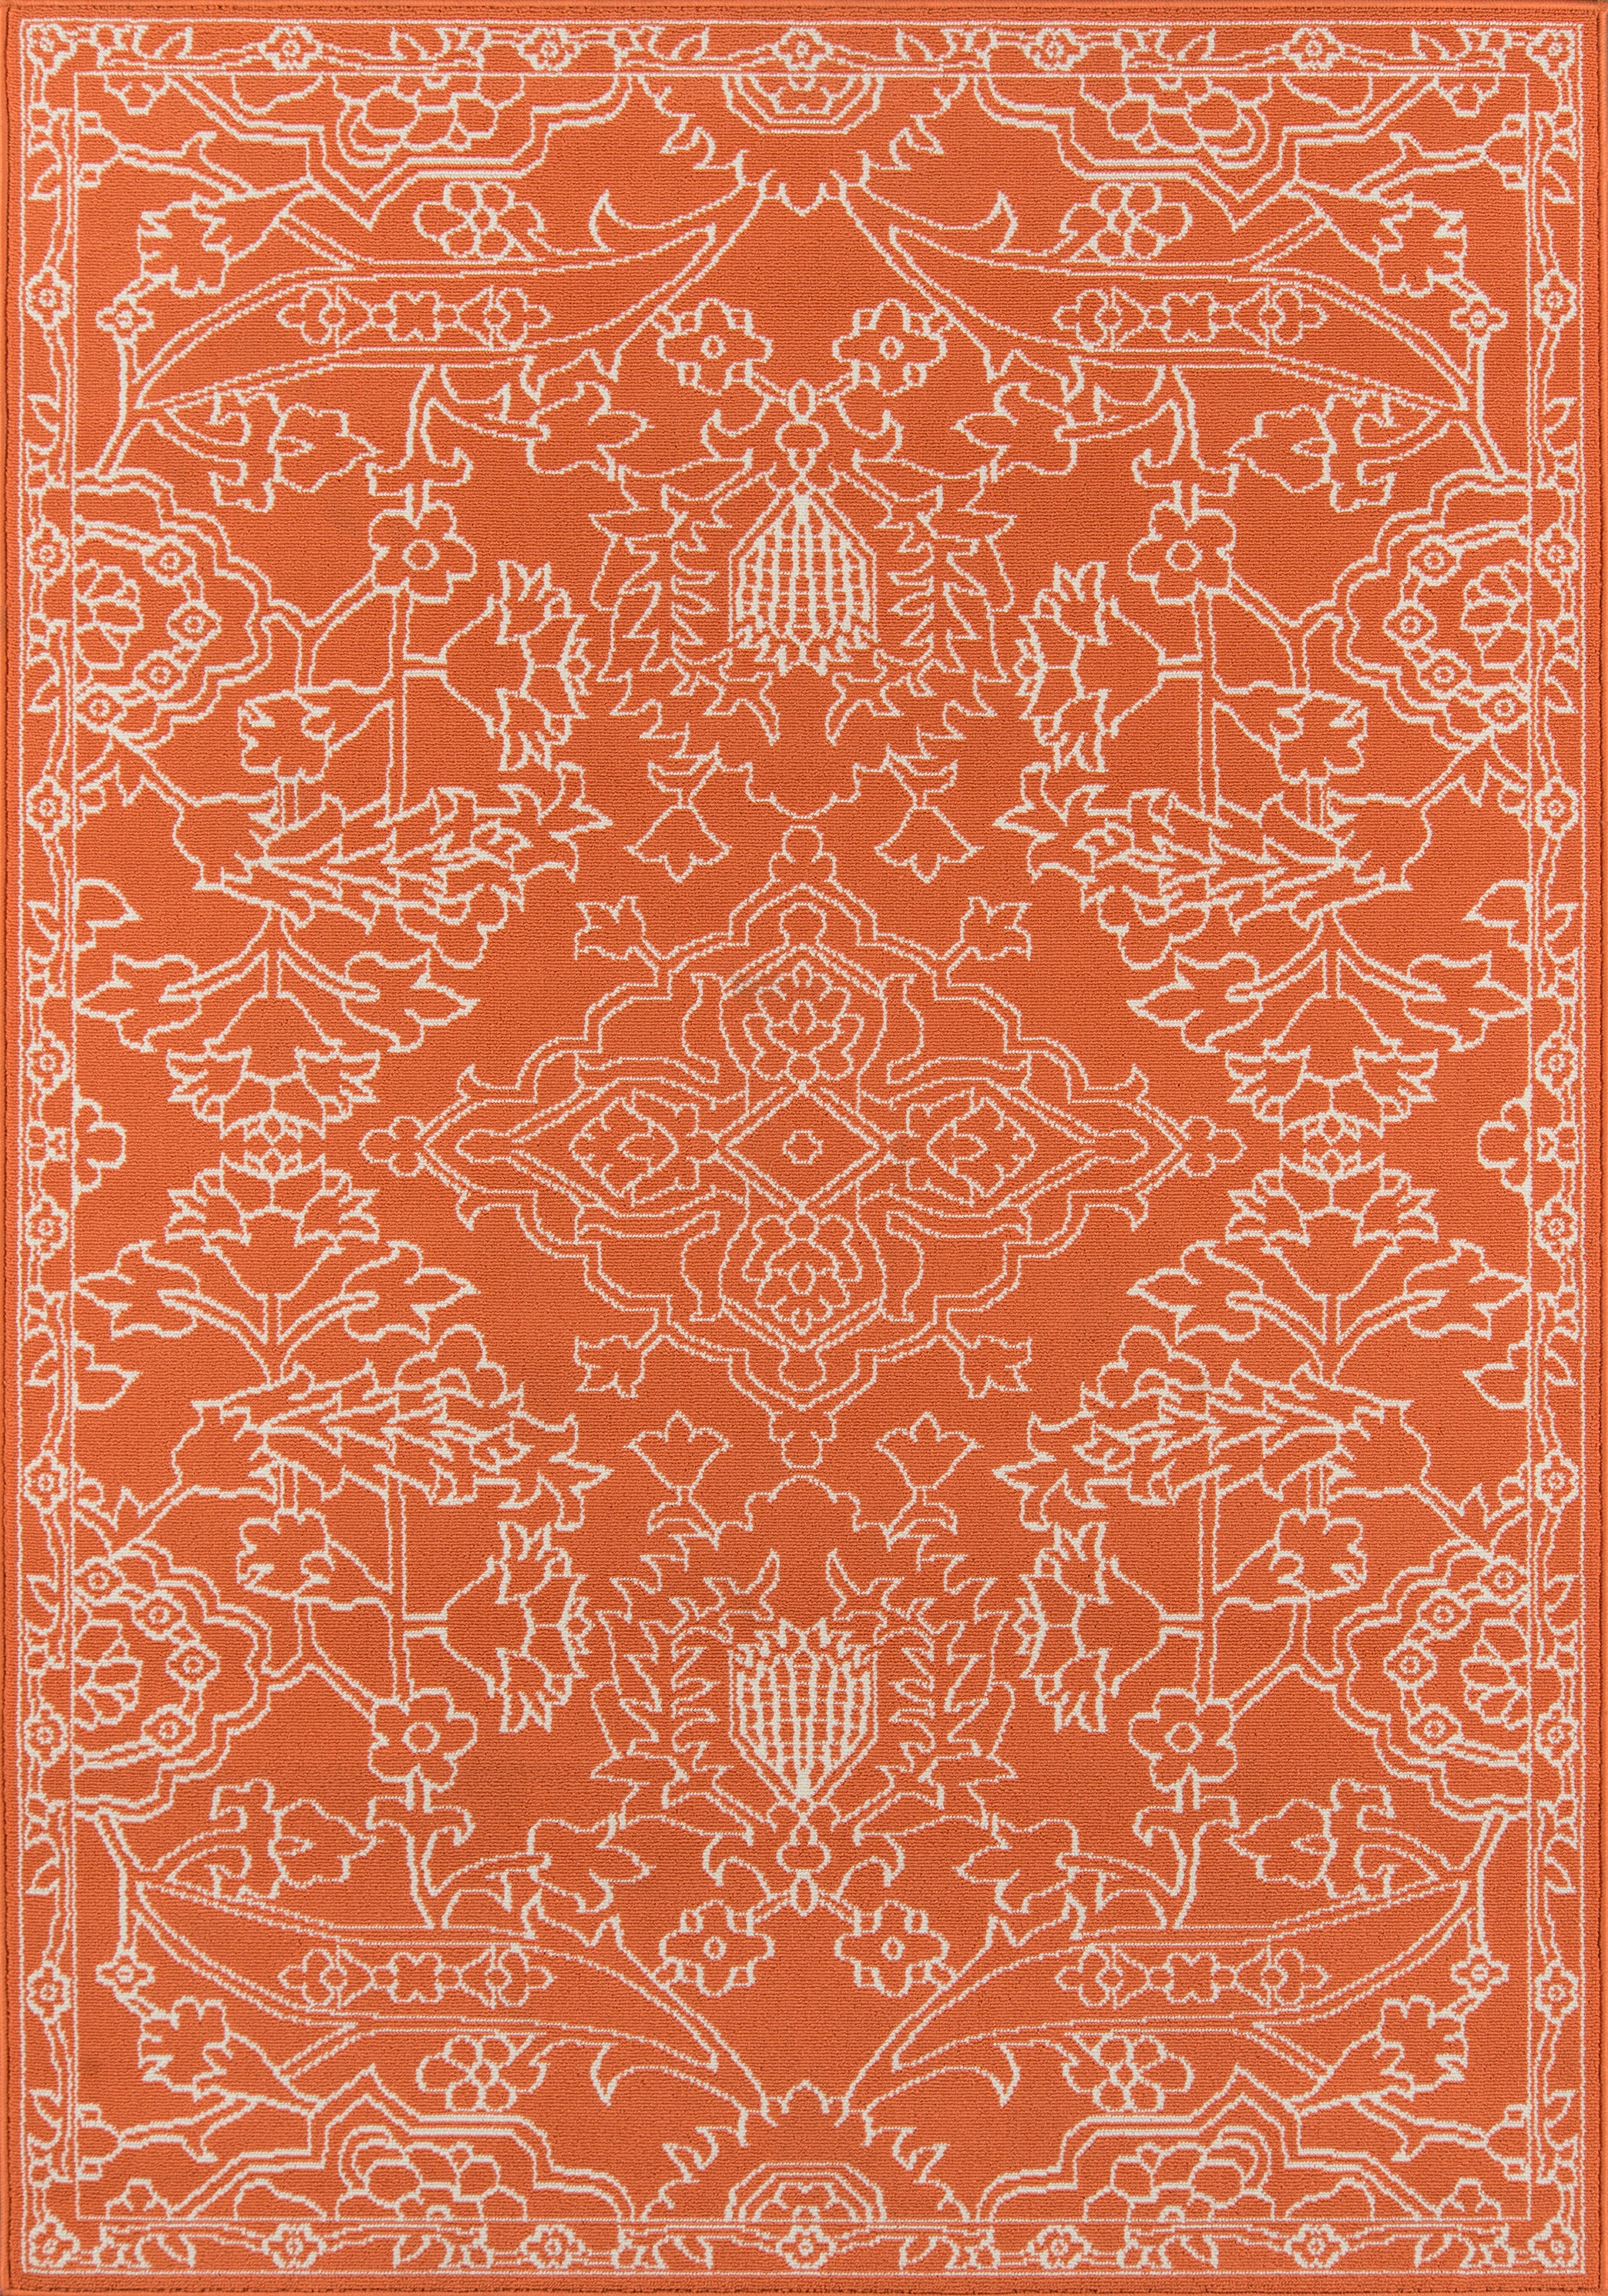 Rectangle 53x76 Orange Floral Machine Made Synthetics Traditional & Oriental recommended for Kitchen, Bedroom, Bathroom, Outdoor, Dining Room, Office, Hallway, Living Room